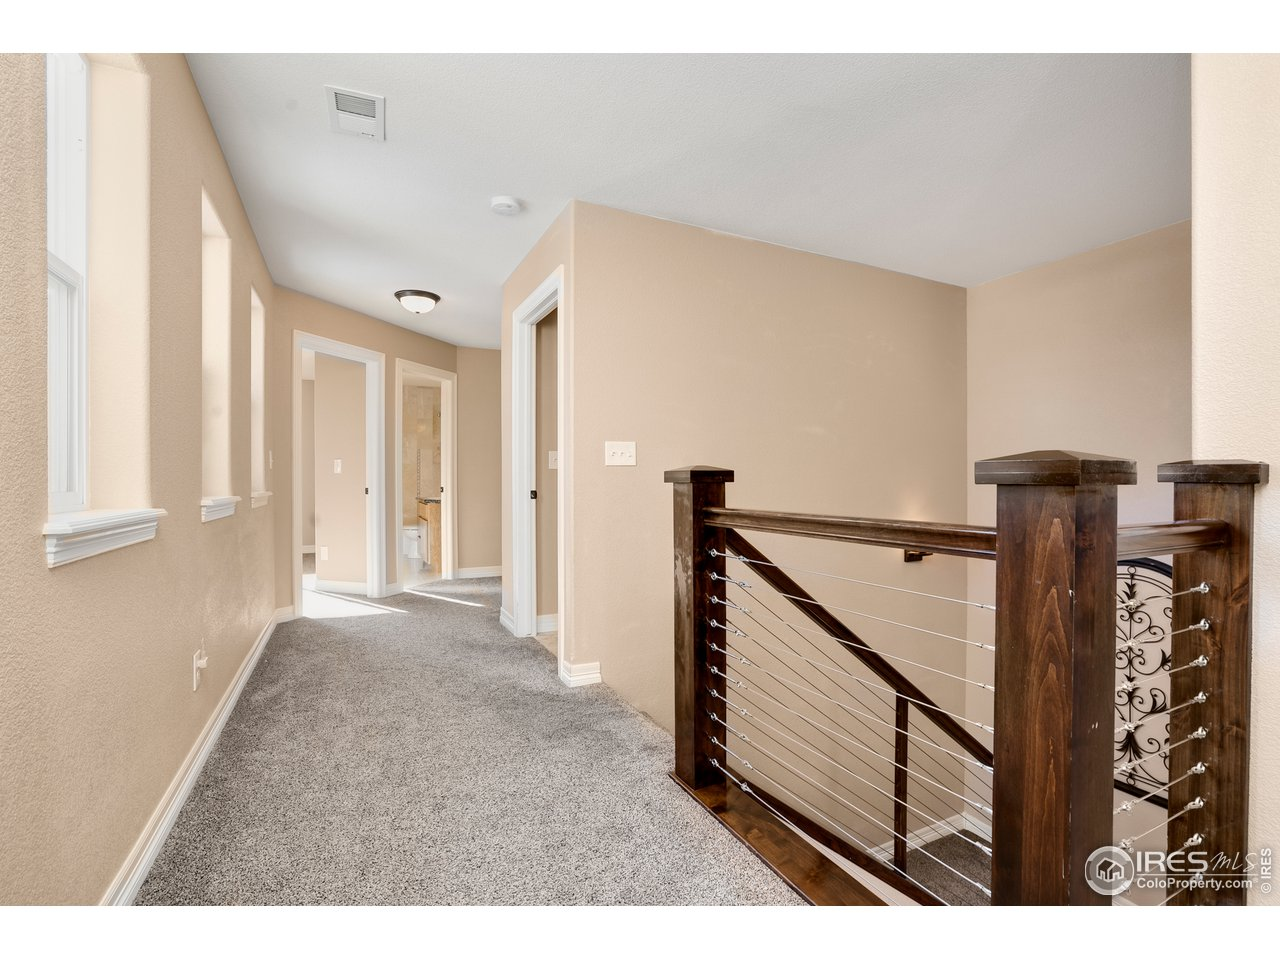 upstairs landing/hallway with is light and bright